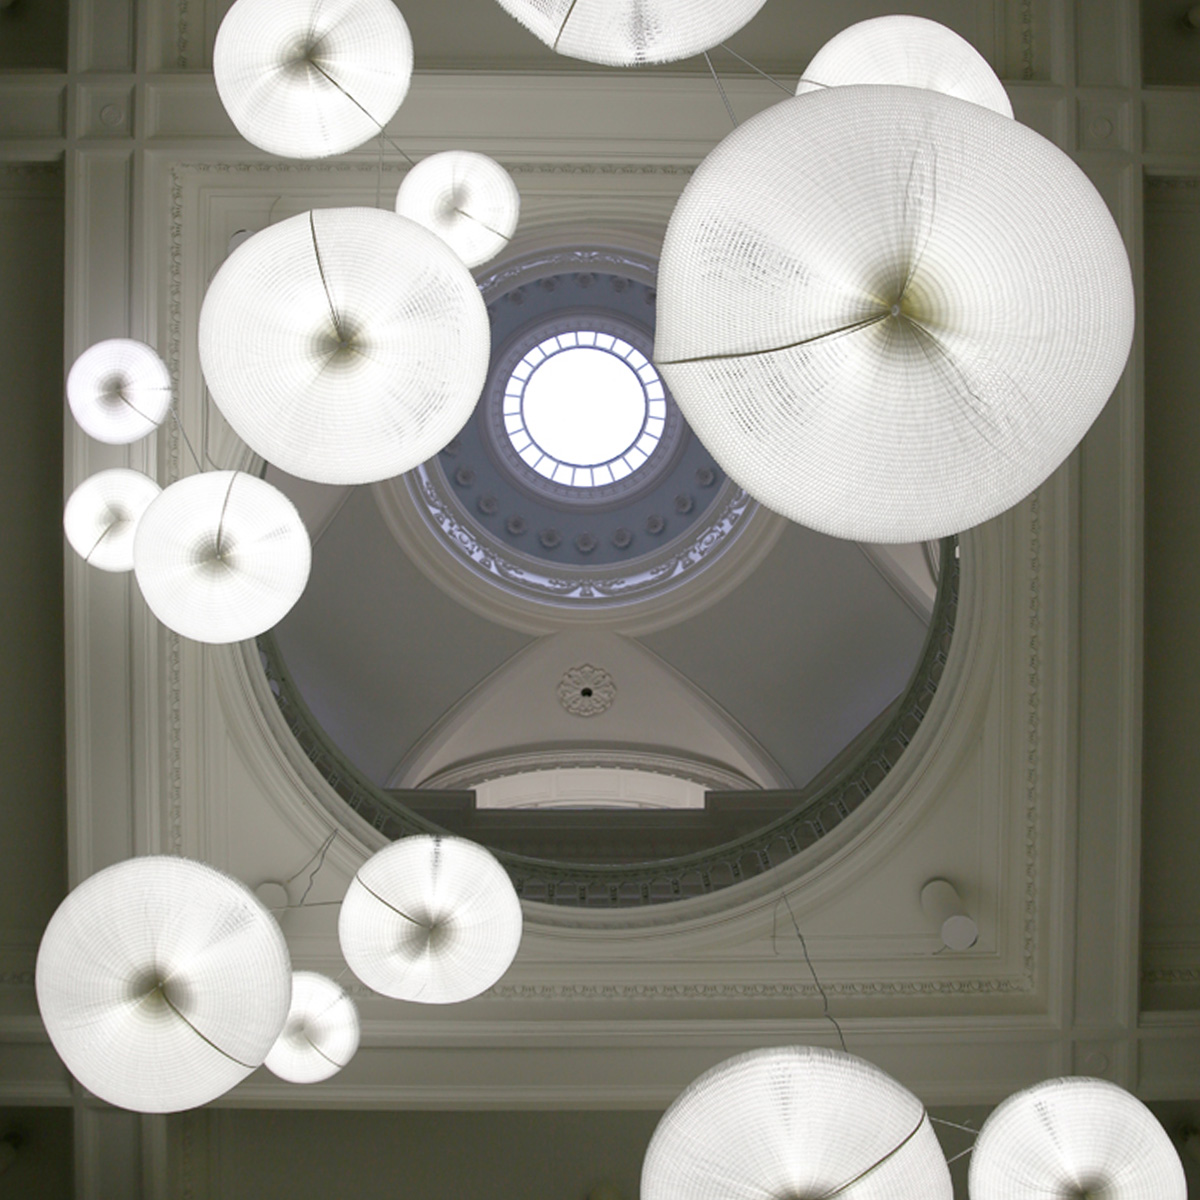 molo makes a custom installation of cloud softlight mobiles for the exhibition Grand Hotel at the Vancouver Art Gallery